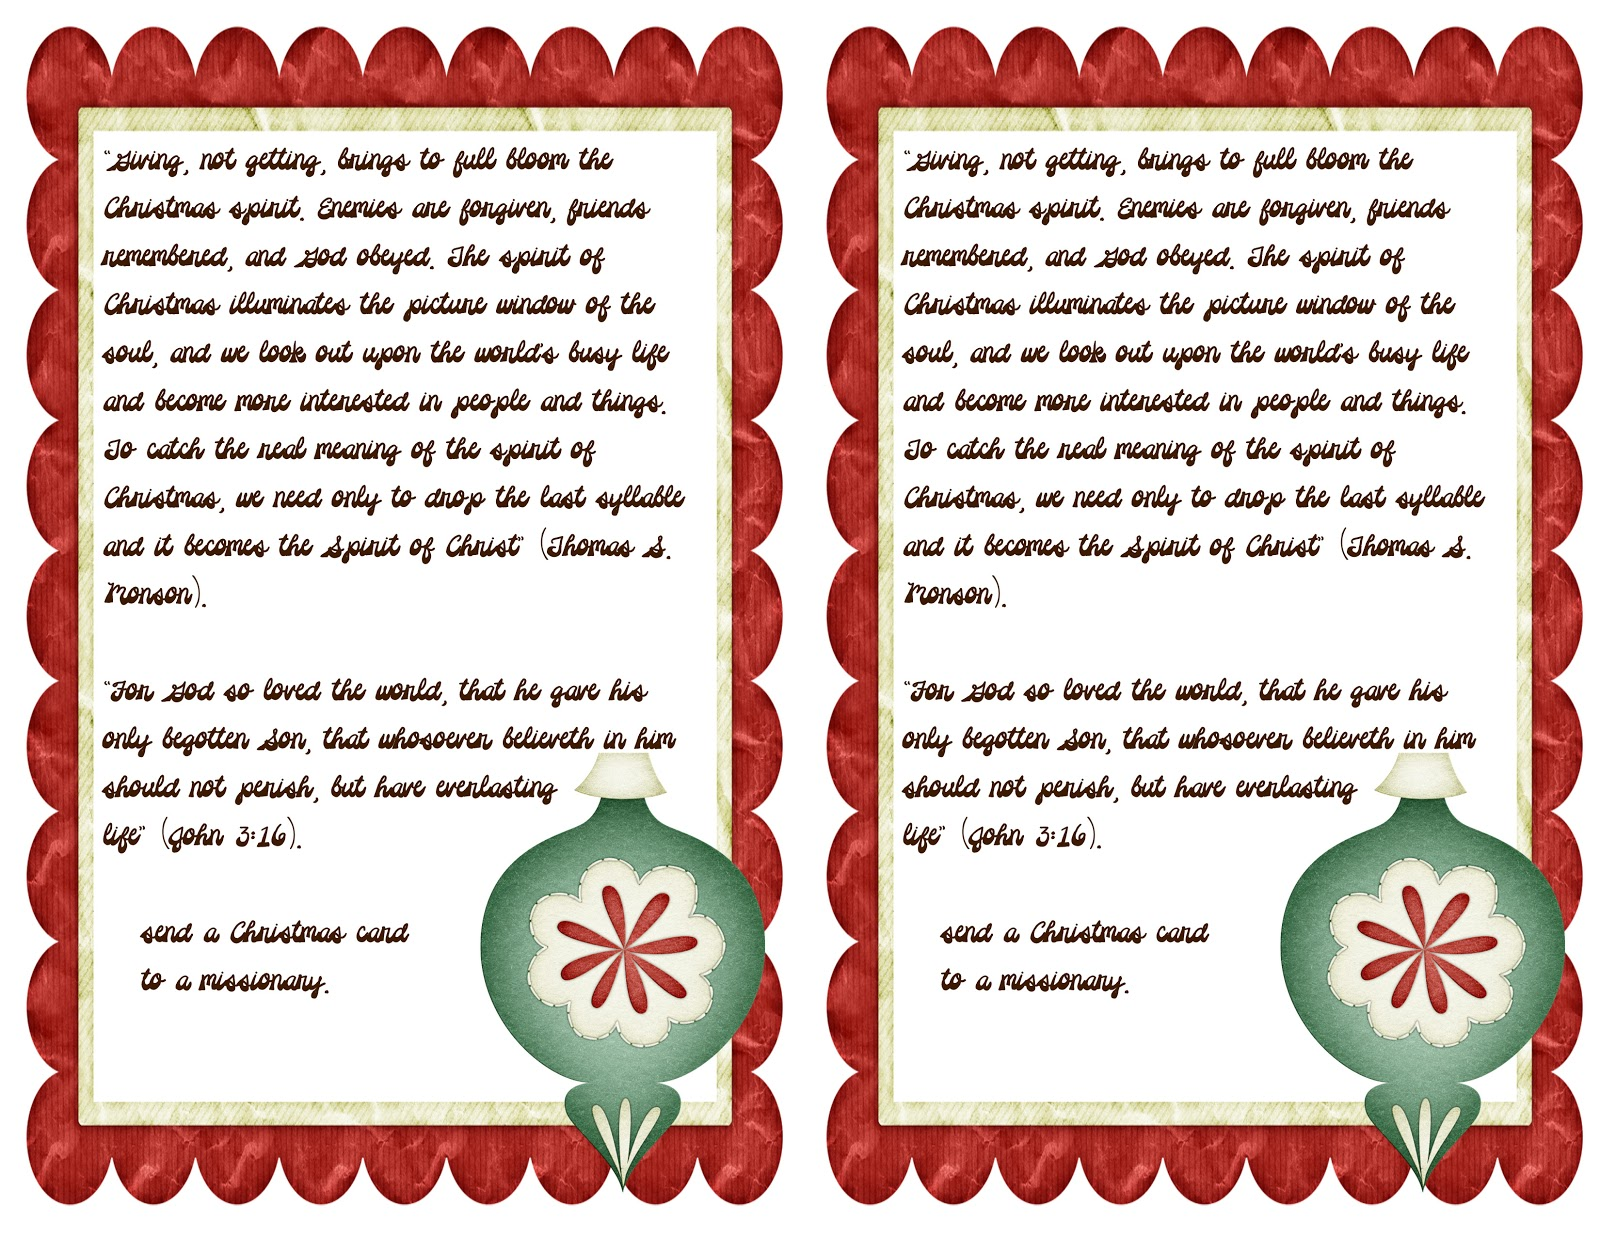 Meaning of 12 days of christmas - I Did The 12 Days Of Christmas For The Girls This Year I Printed These Stories And Then Stuck Them In Envelopes Numbered 1 12 For Them To Open Each Day